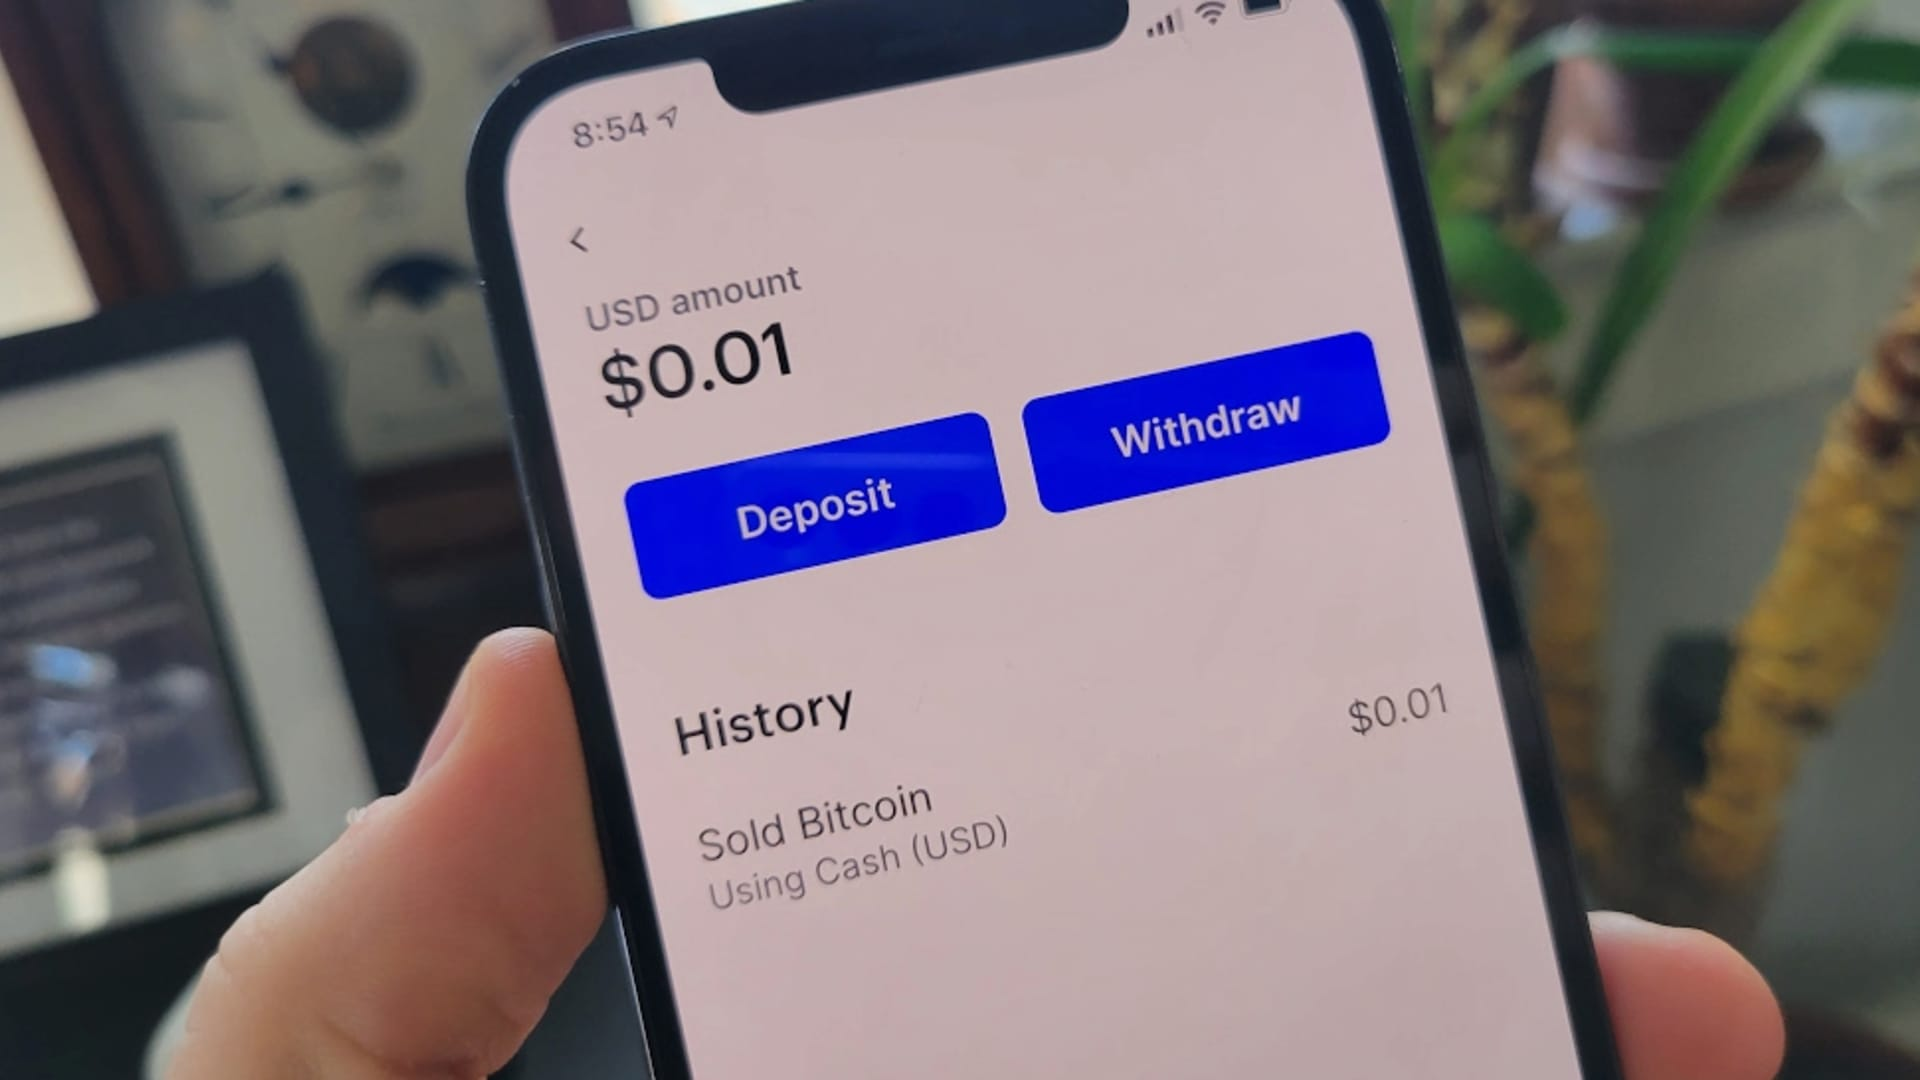 How to withdraw funds from Coinbase